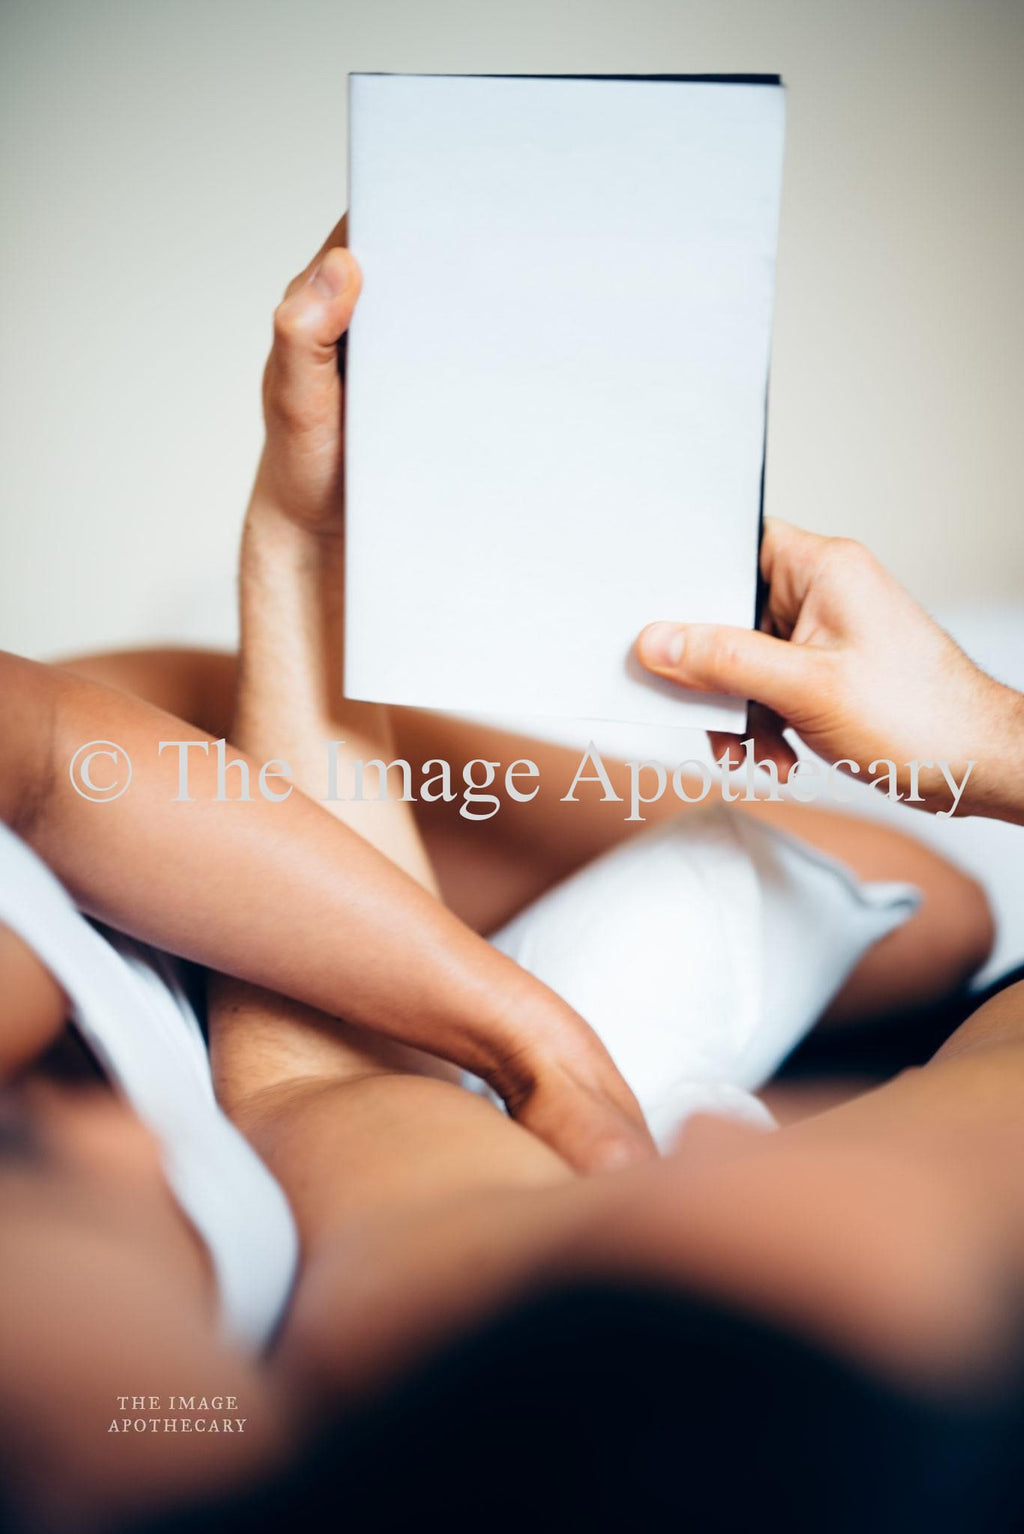 TheImageApothecary-38MO - Stock Photography by The Image Apothecary